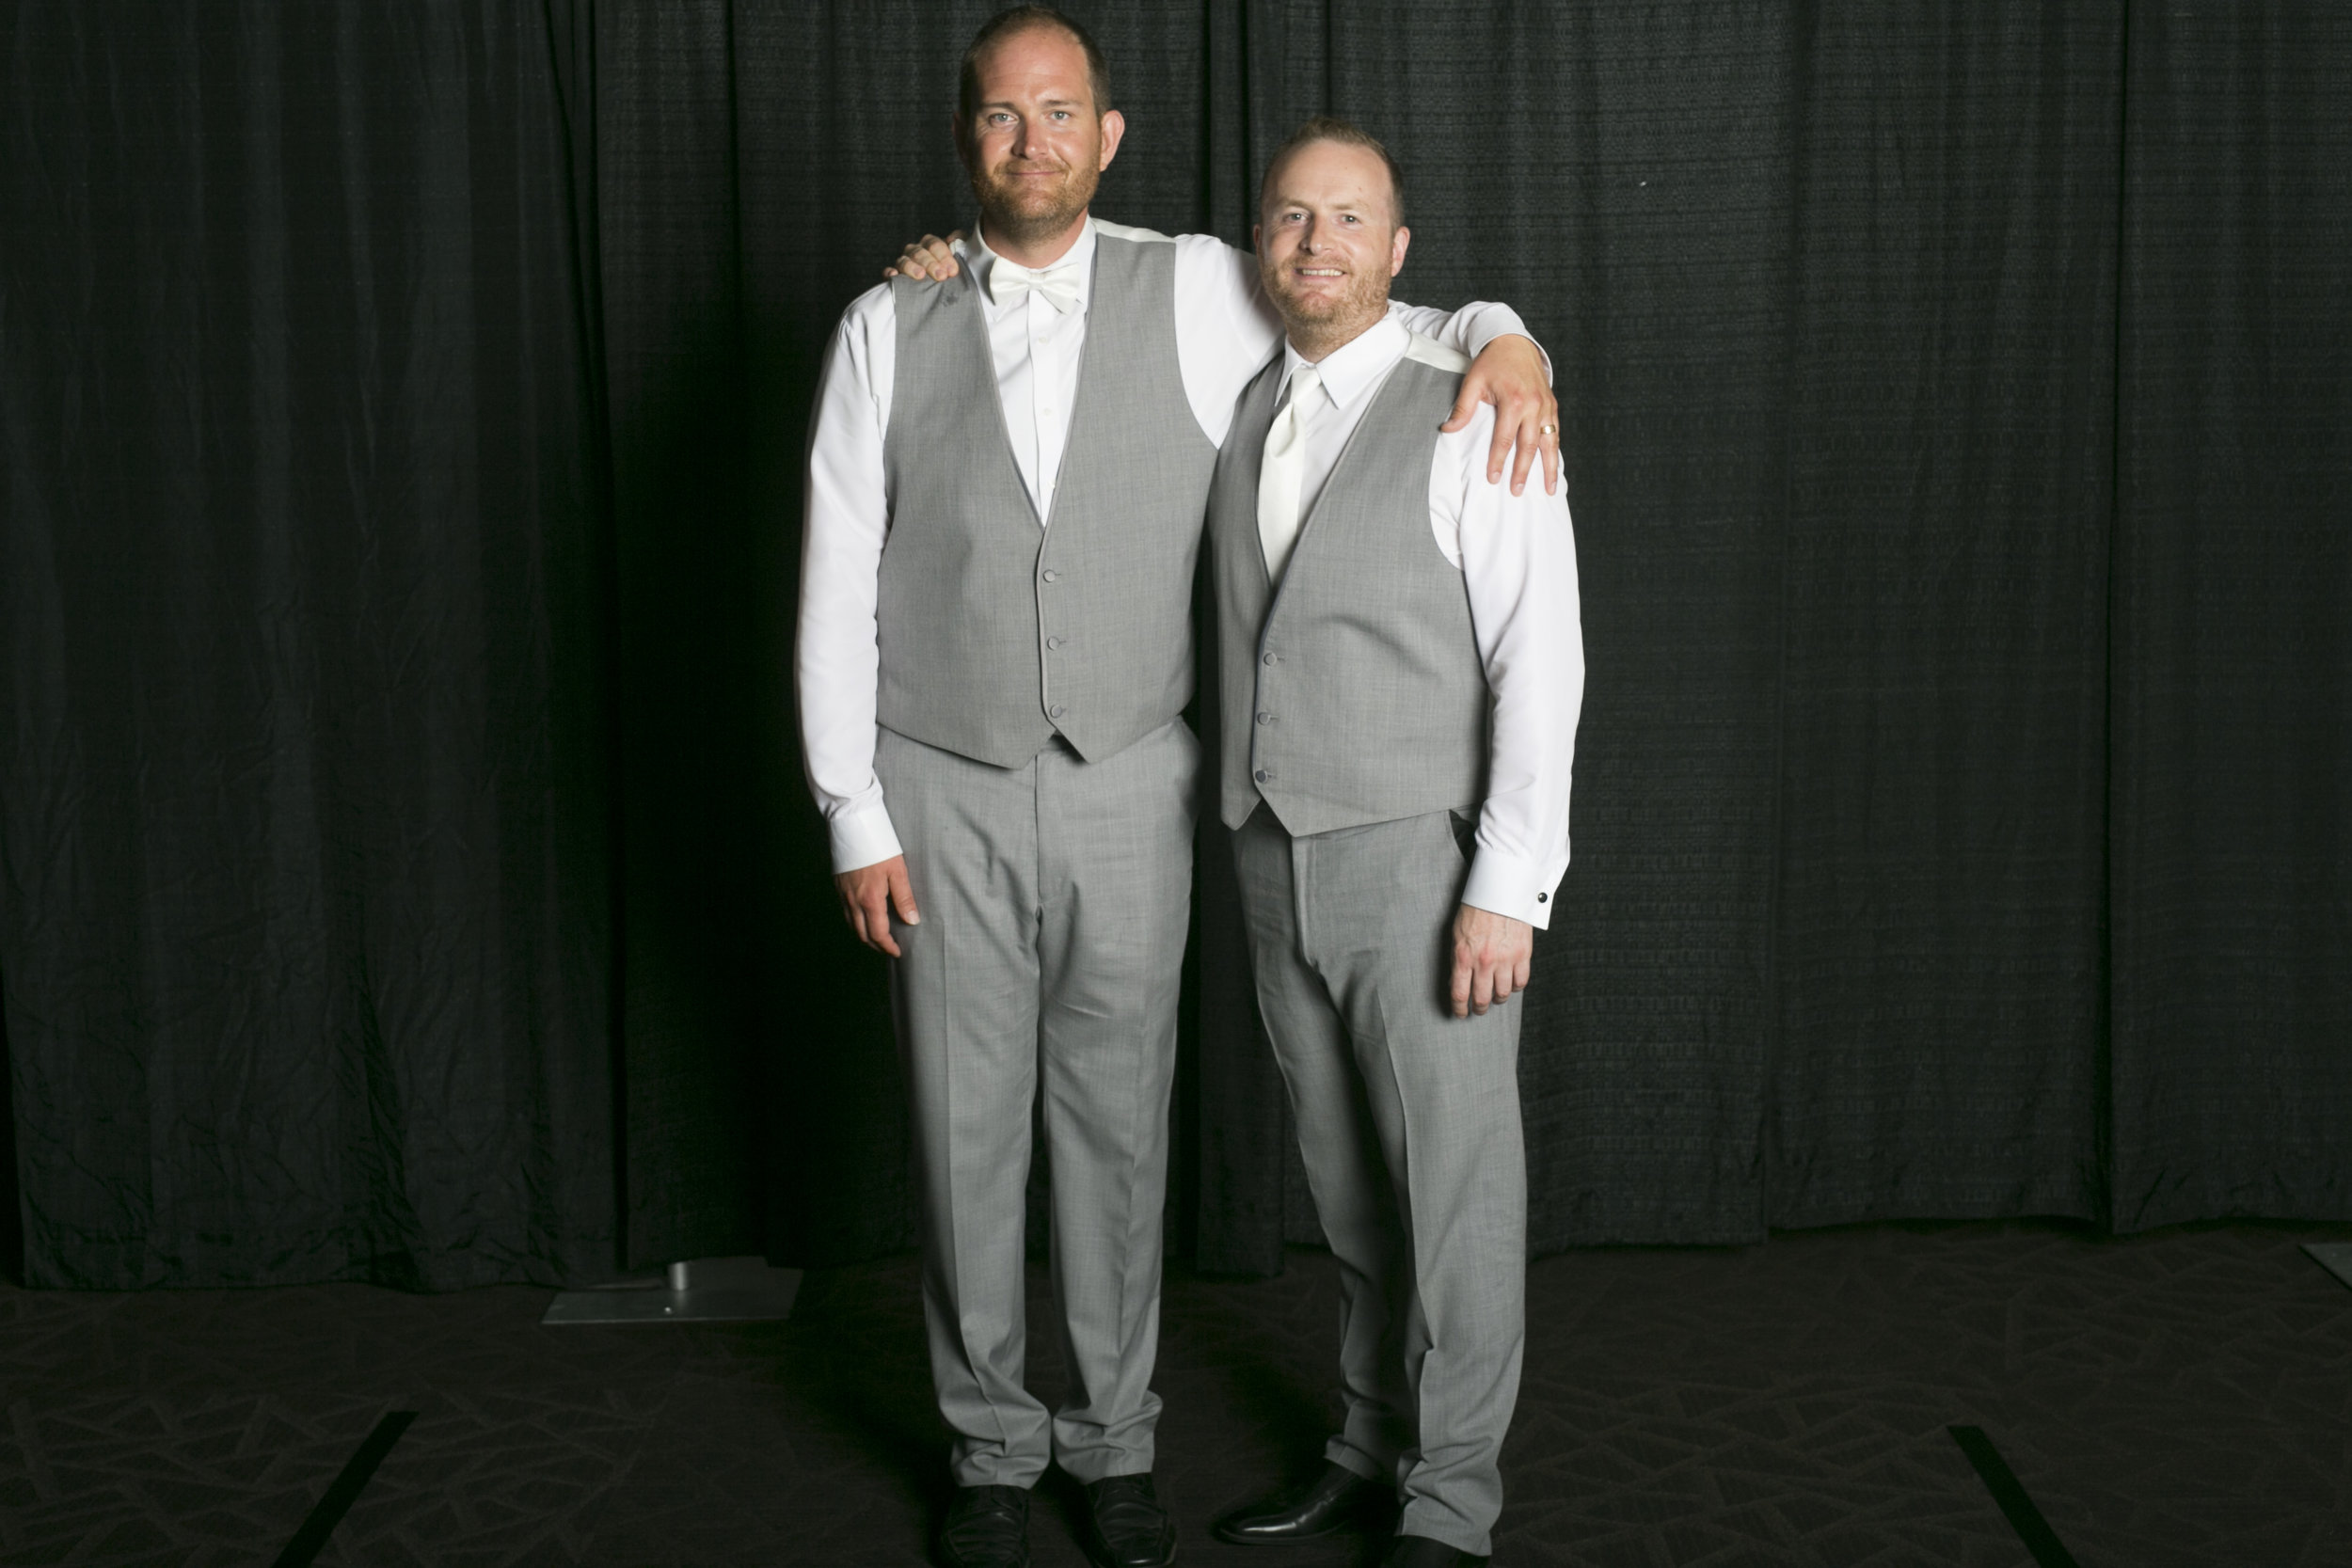 wedding photo booth-154.jpg